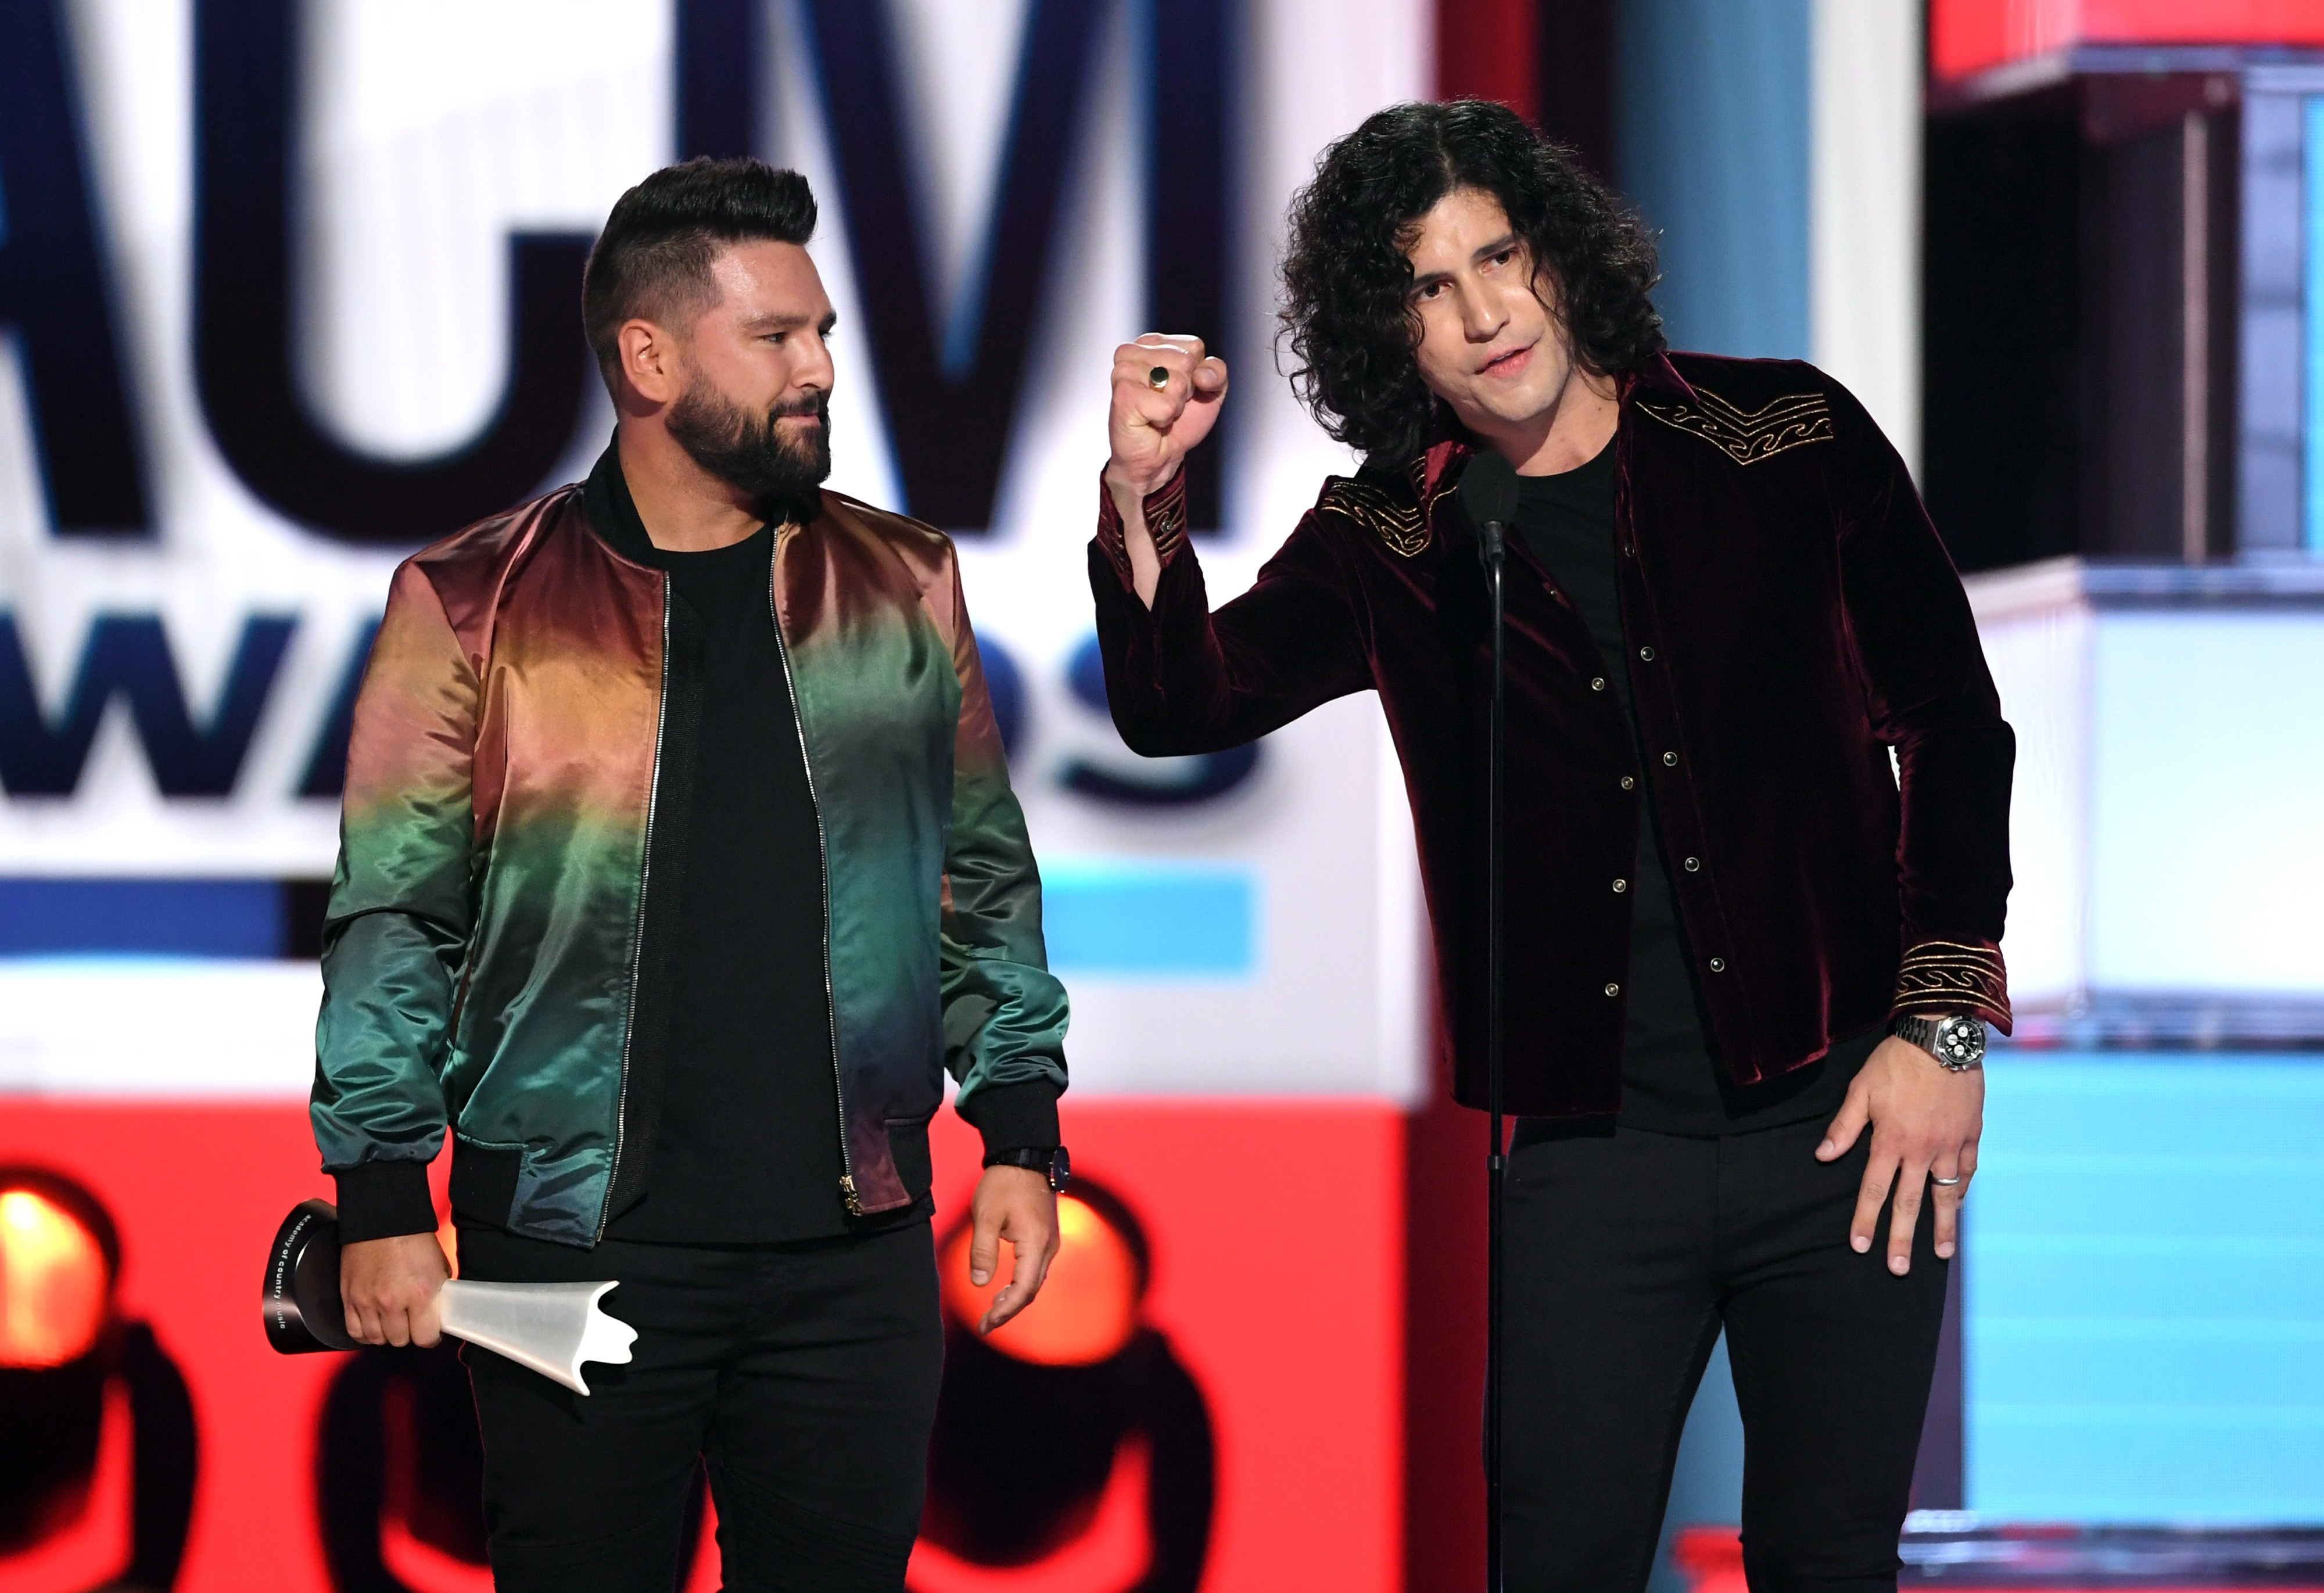 LAS VEGAS, NEVADA - APRIL 07: (L-R) Shay Mooney and Dan Smyers of Dan + Shay accept the Duo of the Year award onstage during the 54th Academy Of Country Music Awards at MGM Grand Garden Arena on April 07, 2019 in Las Vegas, Nevada. (Photo by Kevin Winter/Getty Images)